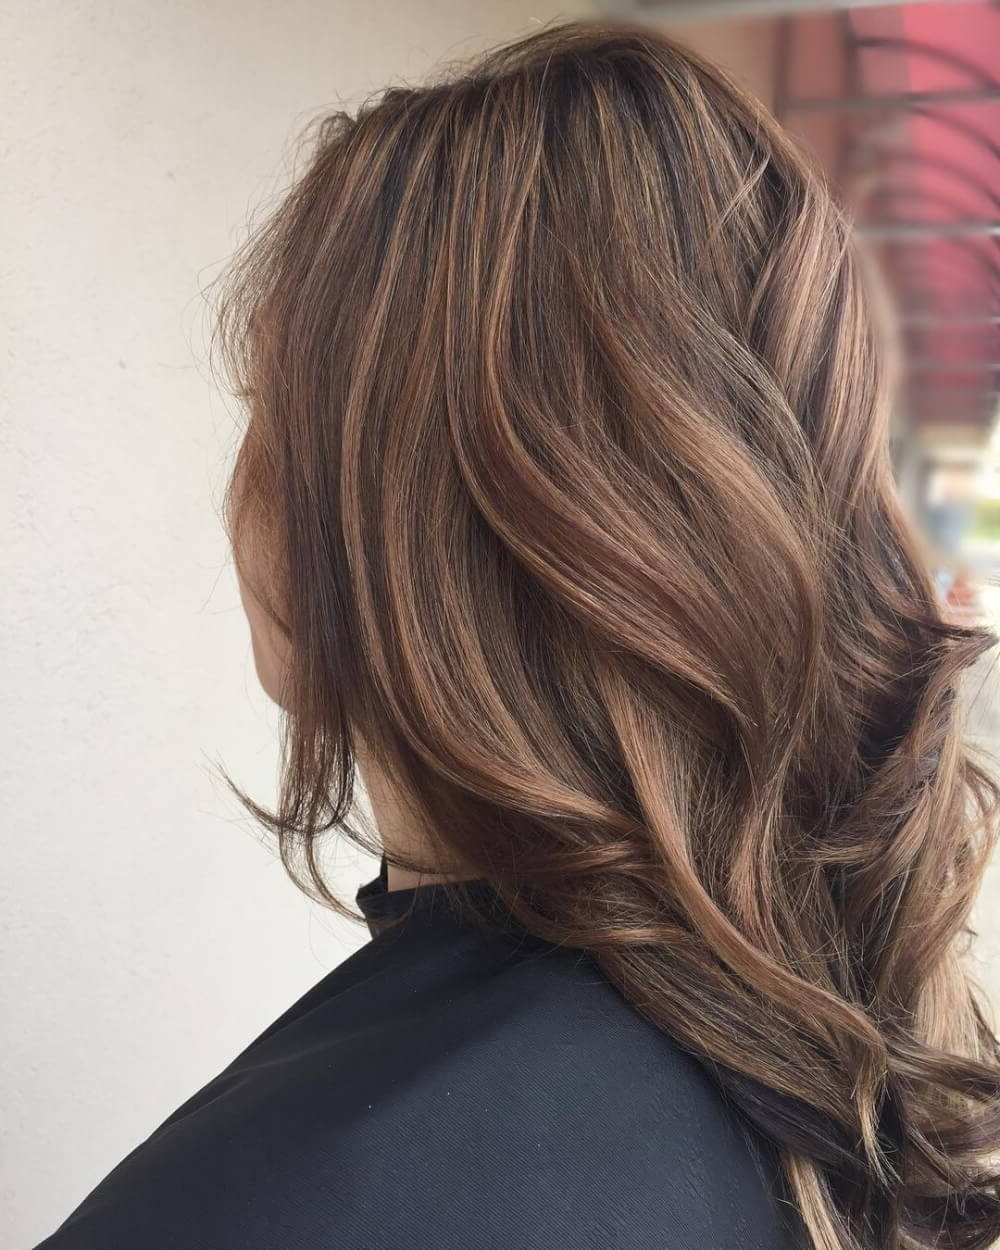 34 Light Brown Hair Colors That Are Blowing Up In 2018 With Golden Brown Thick Curly Bob Hairstyles (View 7 of 20)